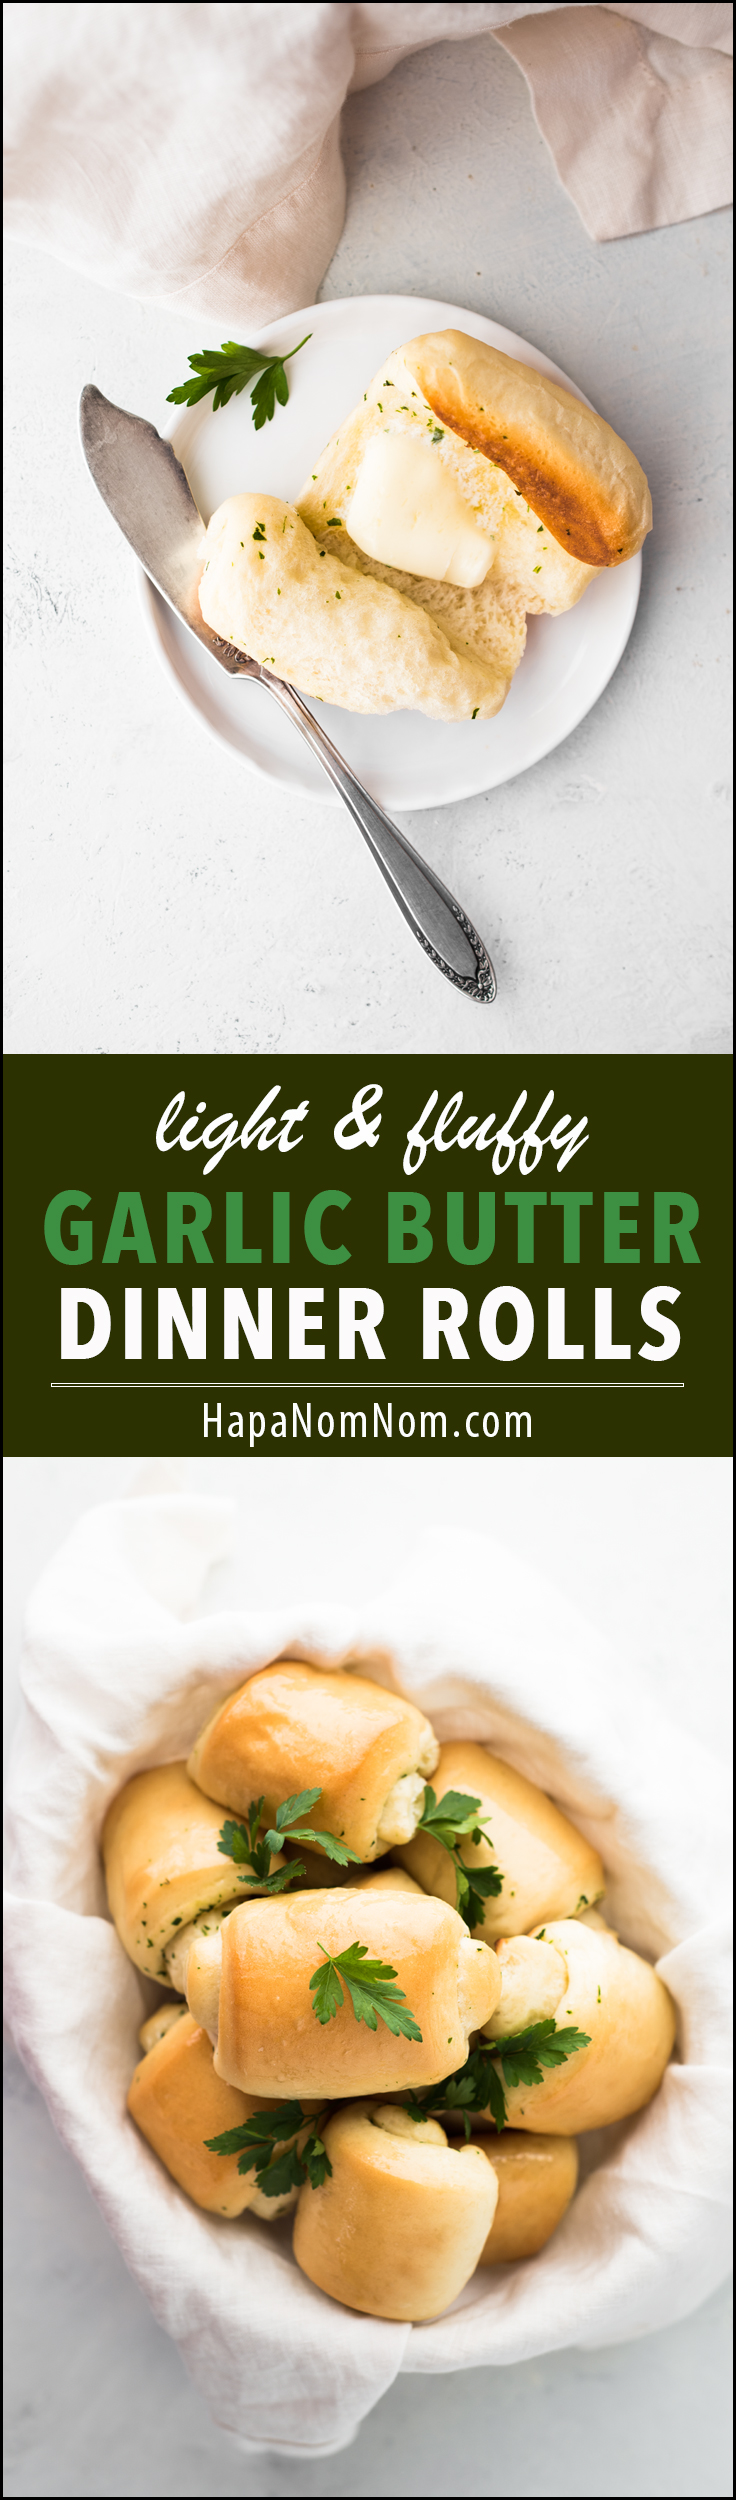 Incredibly light and fluffy Garlic Butter Dinner Rolls